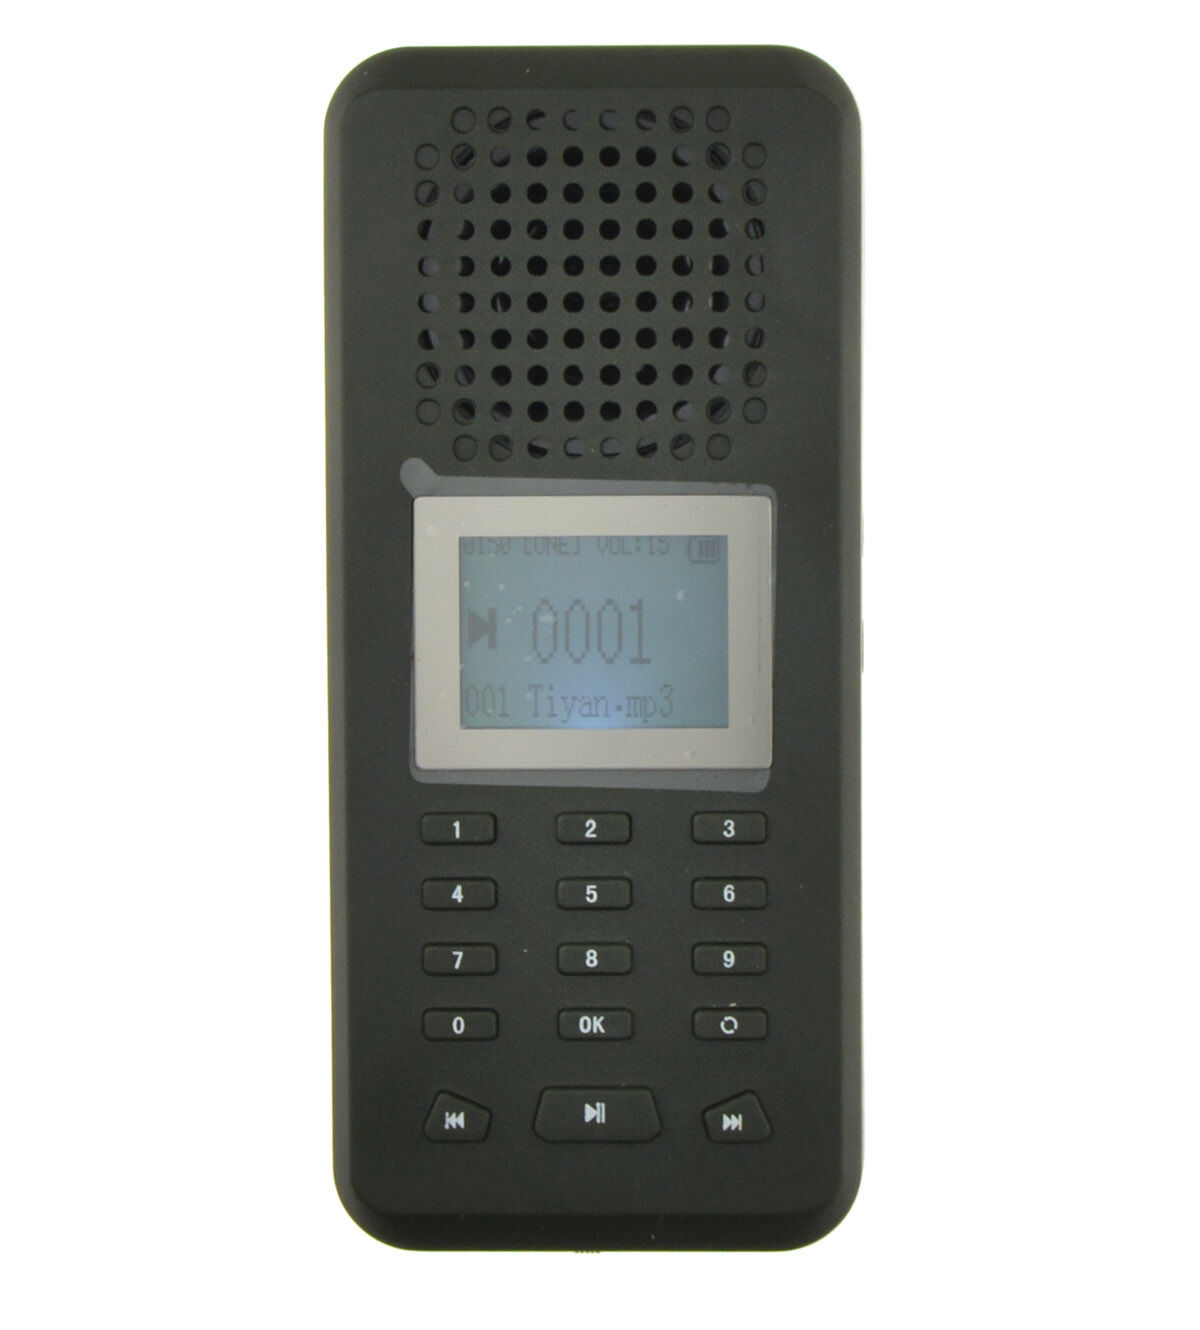 Hunting MP3 Player Bird Decoy Bird Caller 20W 126dB Speaker  LCD Display  quality first consumers first